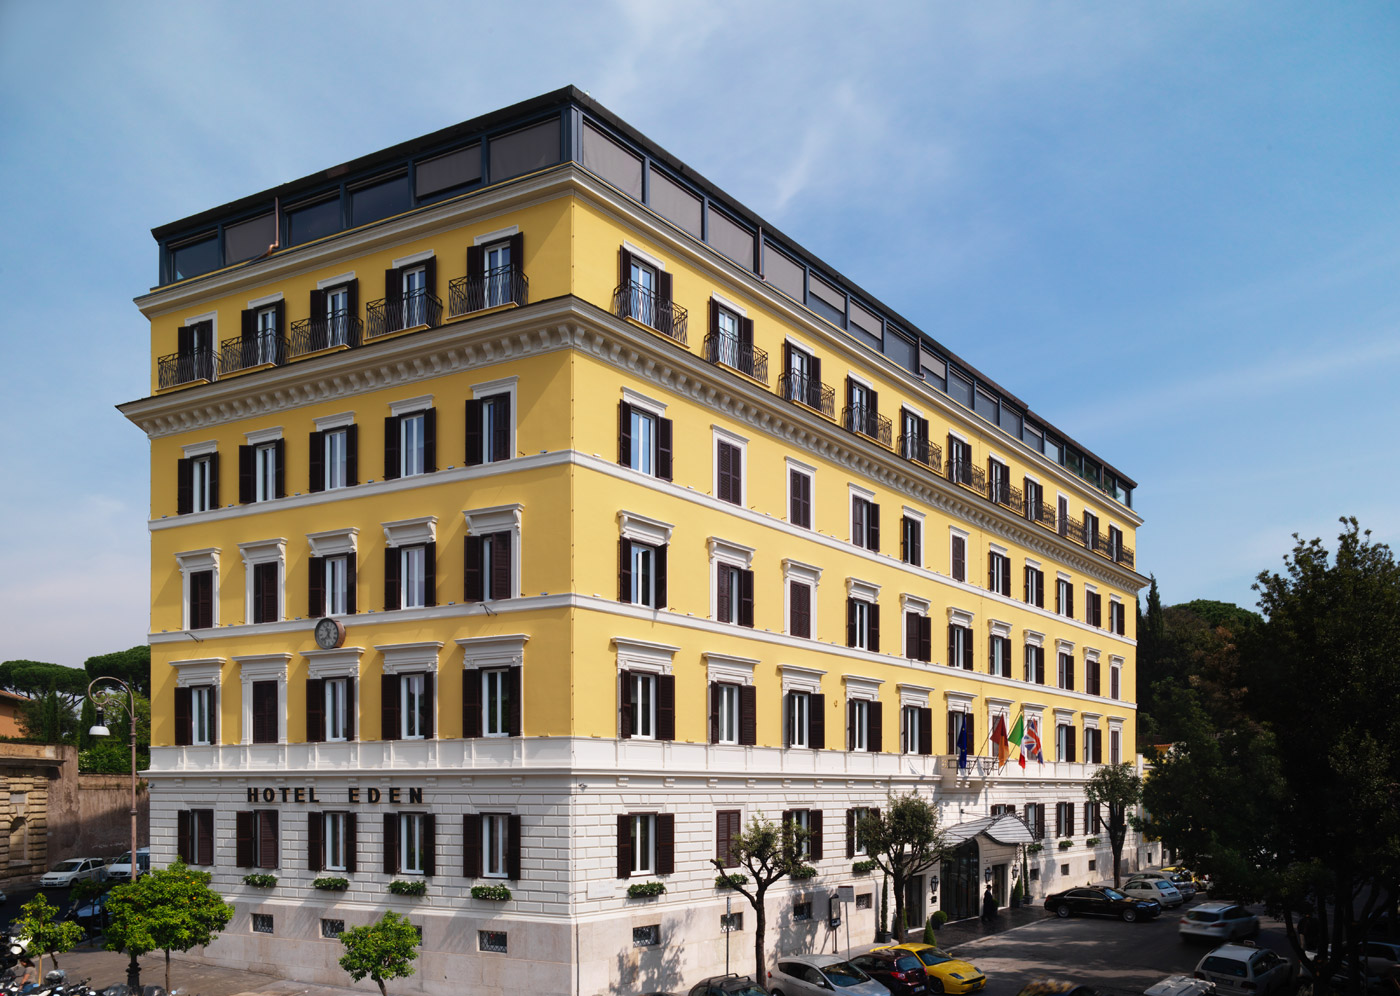 Rome's Luxurious Hotel Eden Celebrates Its 130th Anniversary